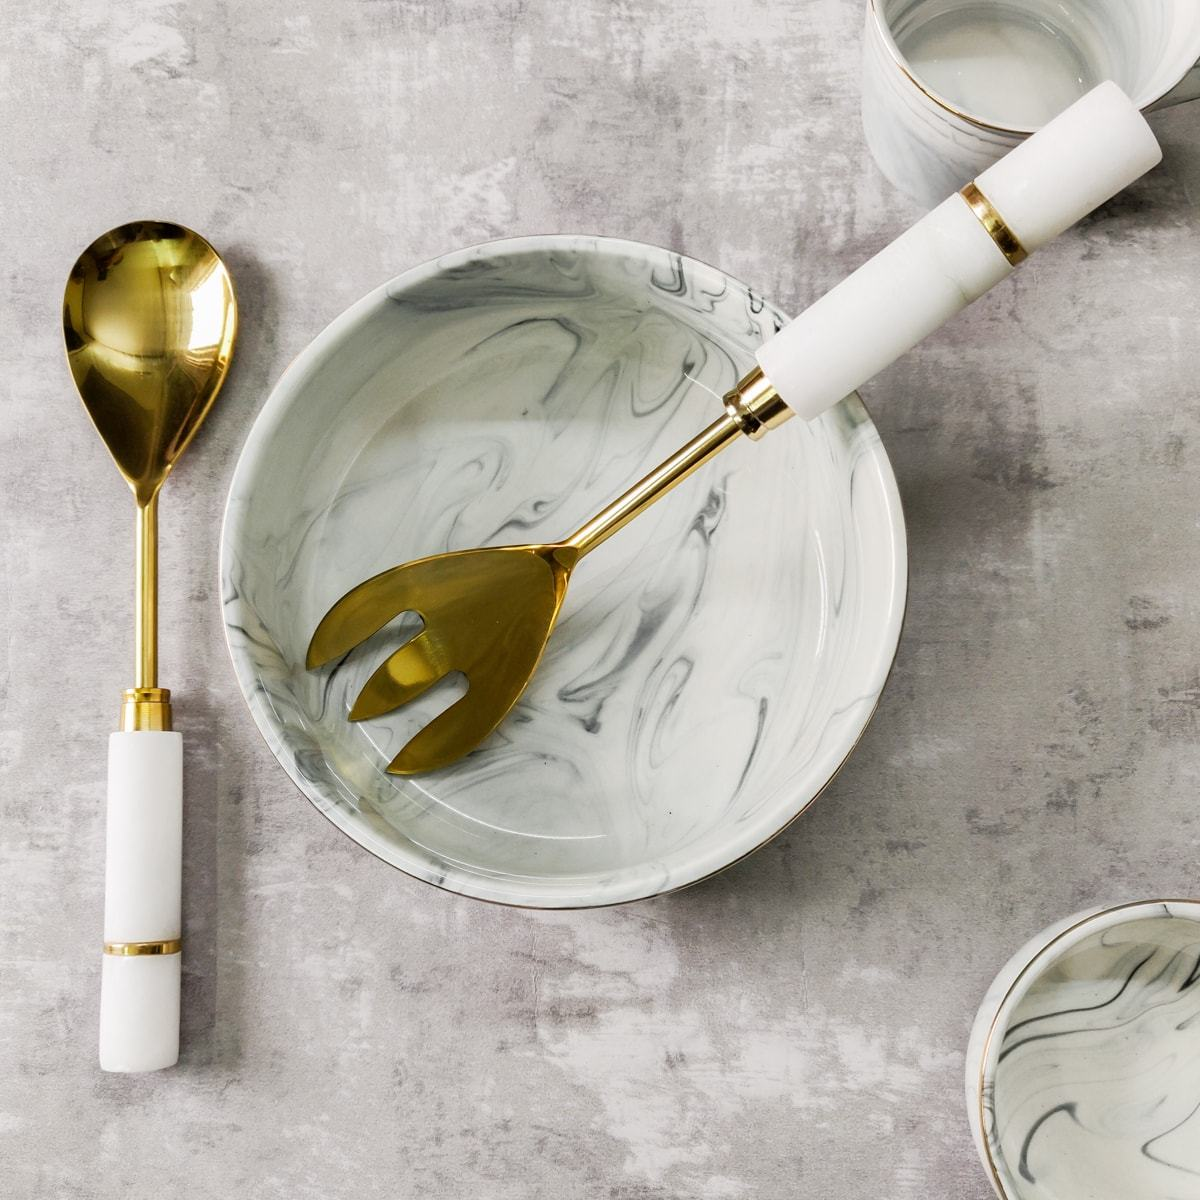 Irving Marble and Brass Serving Spoon and Spork Set